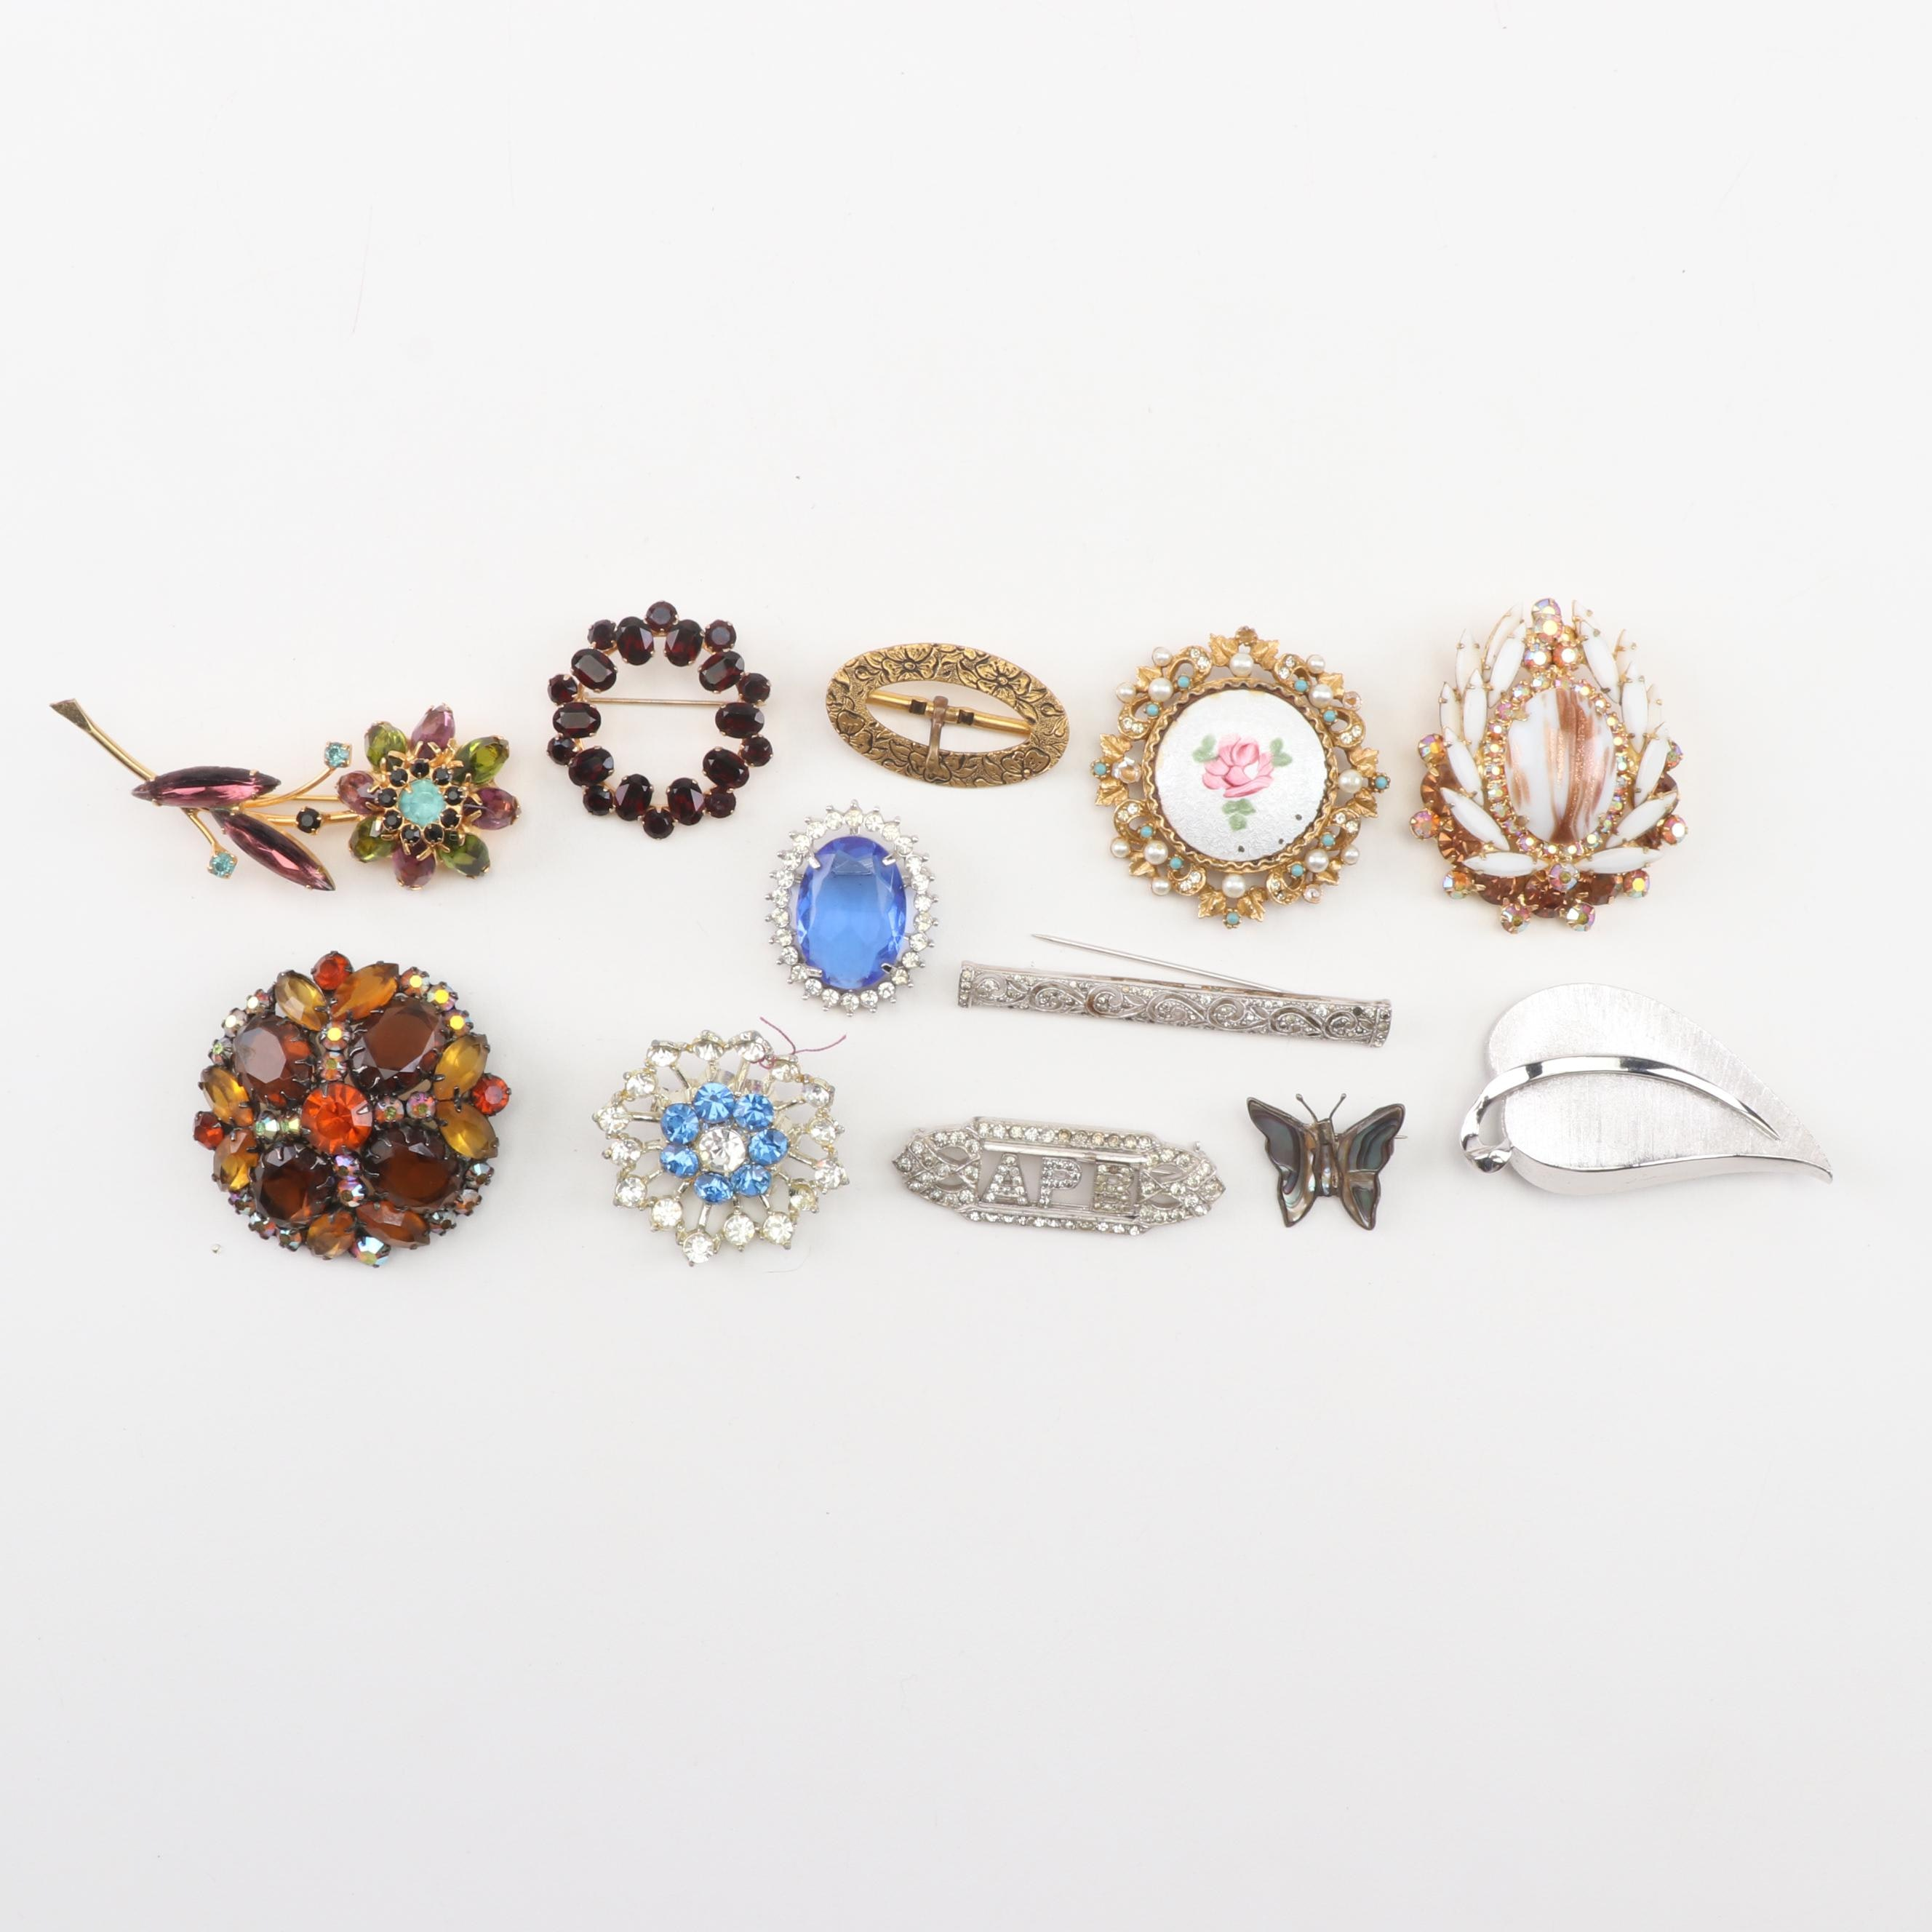 Assorted Costume Jewelry Brooches